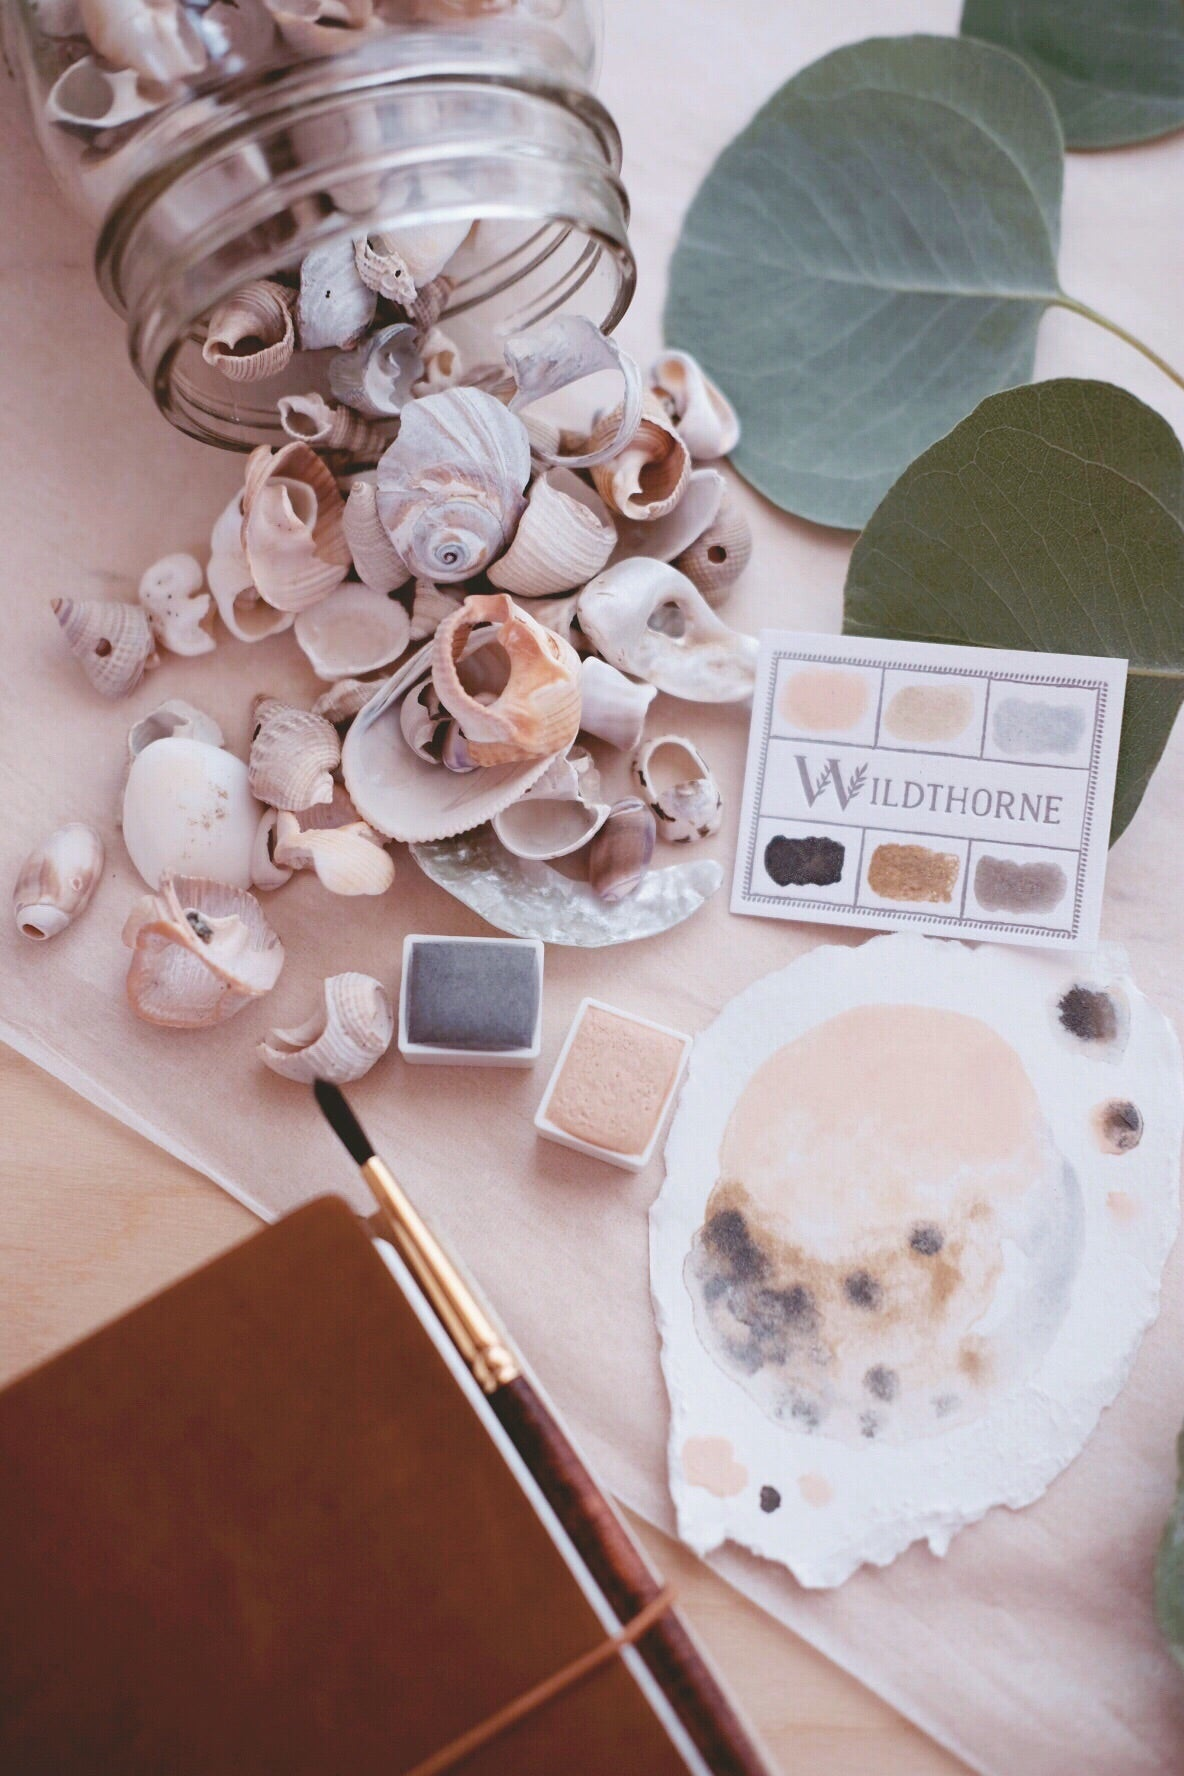 RESERVE for Micheline + Seashell Beachcombing - Limited edition Gemstone Mineral watercolor palette